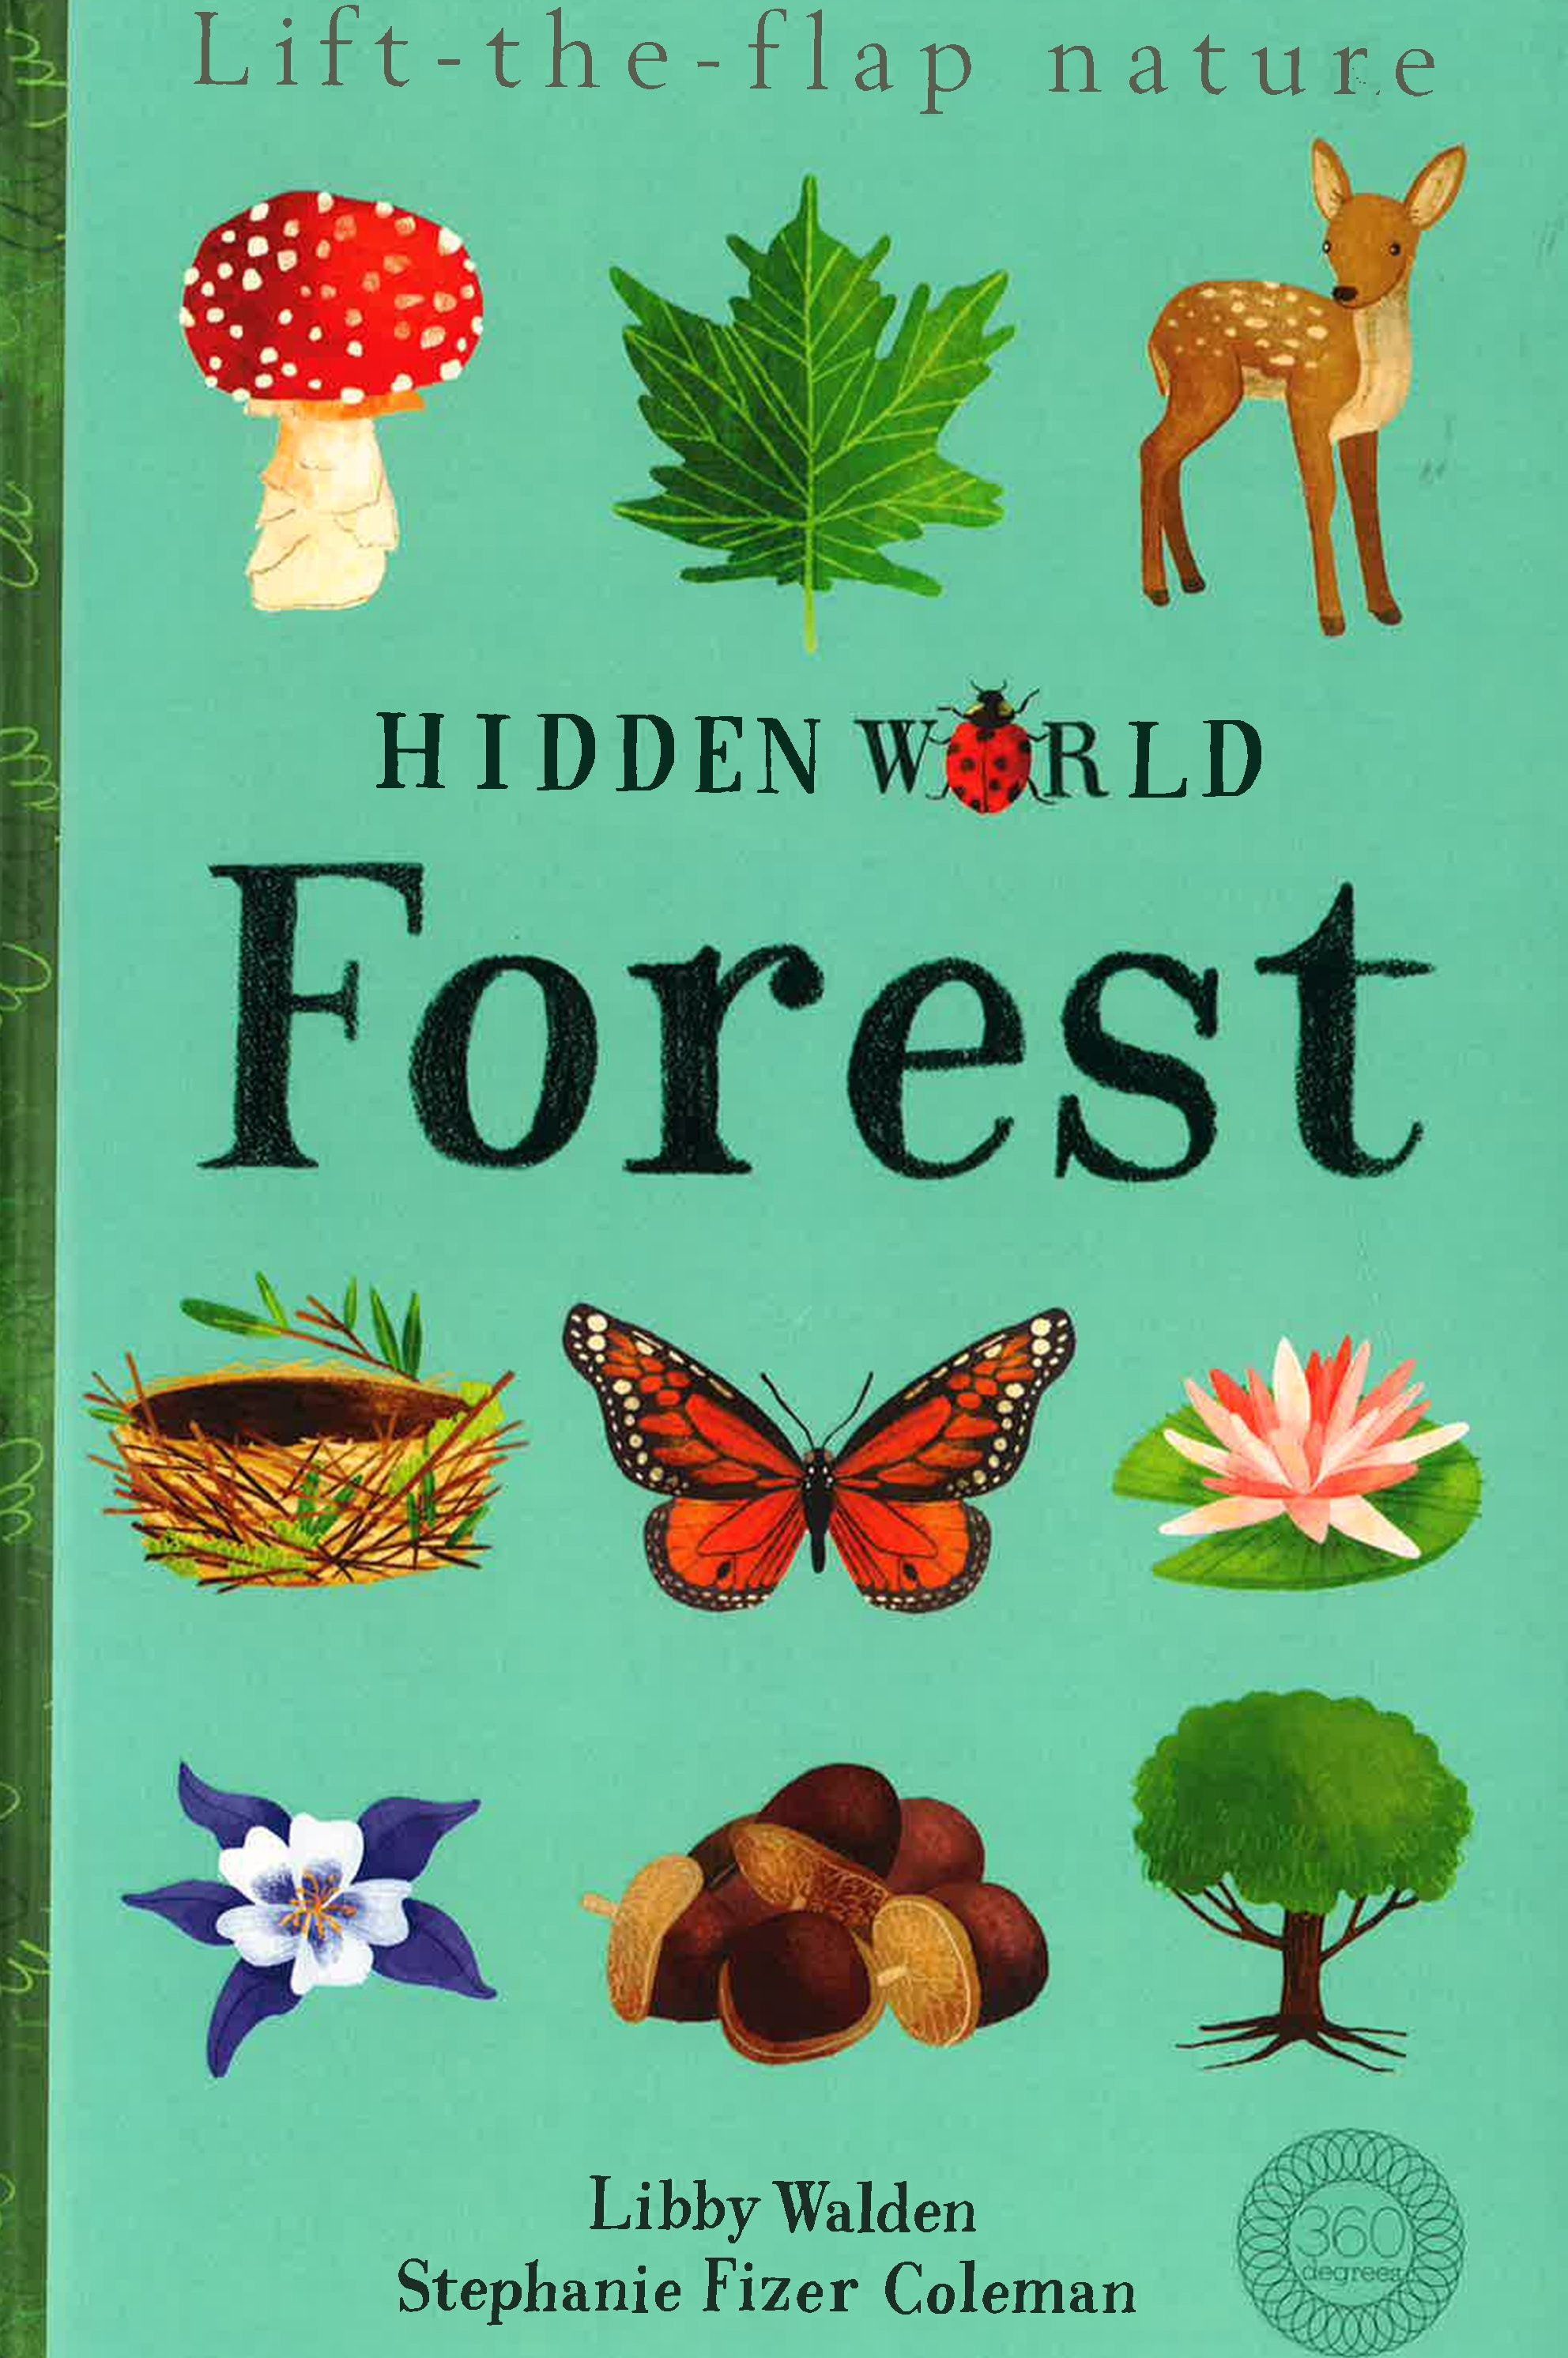 Lift - The - Flap Nature: Hidden World Forest